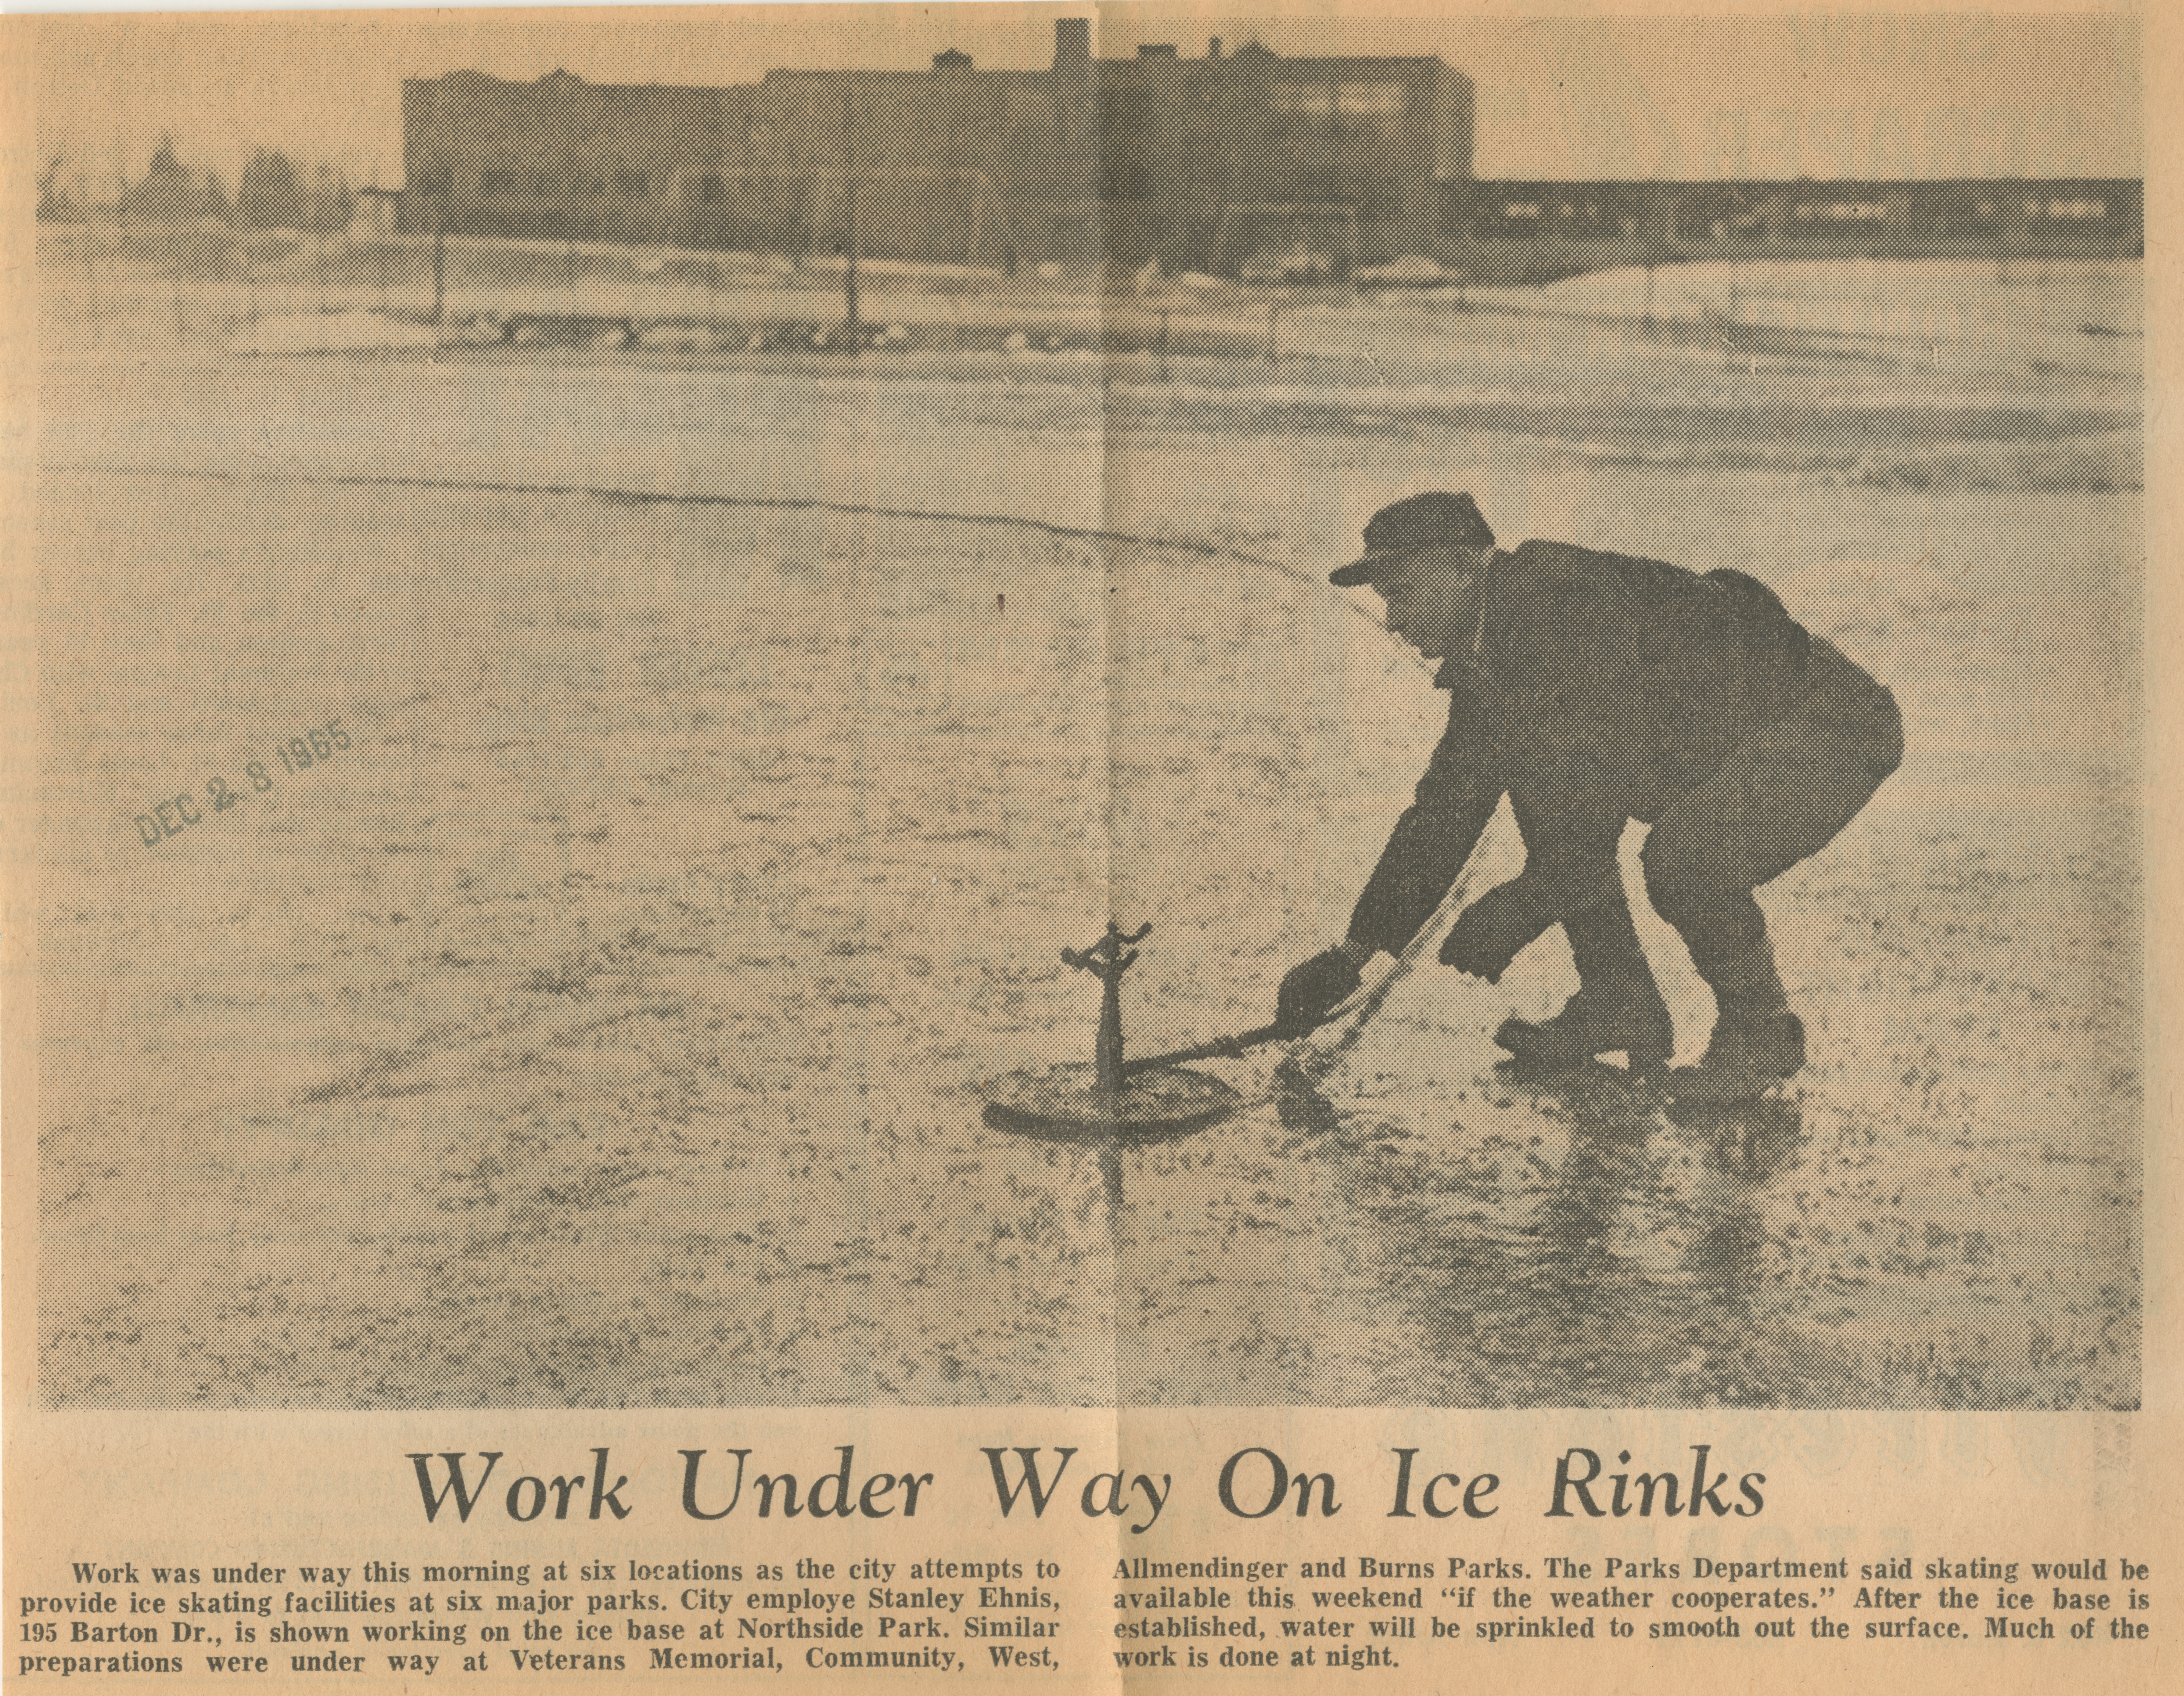 Work Under Way On Ice Rinks image